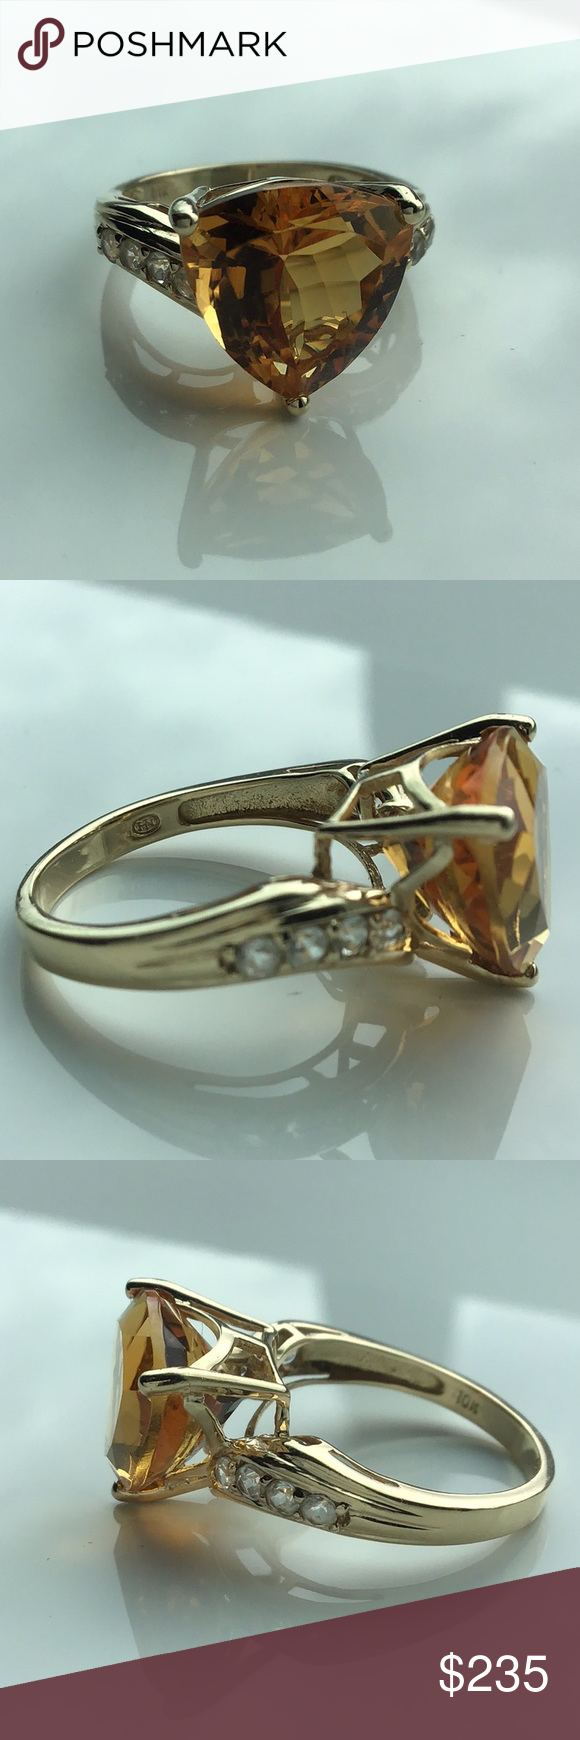 New Huge Tested 10k Citrine Ring In 2020 Womens Jewelry Rings Citrine Ring Women Jewelry